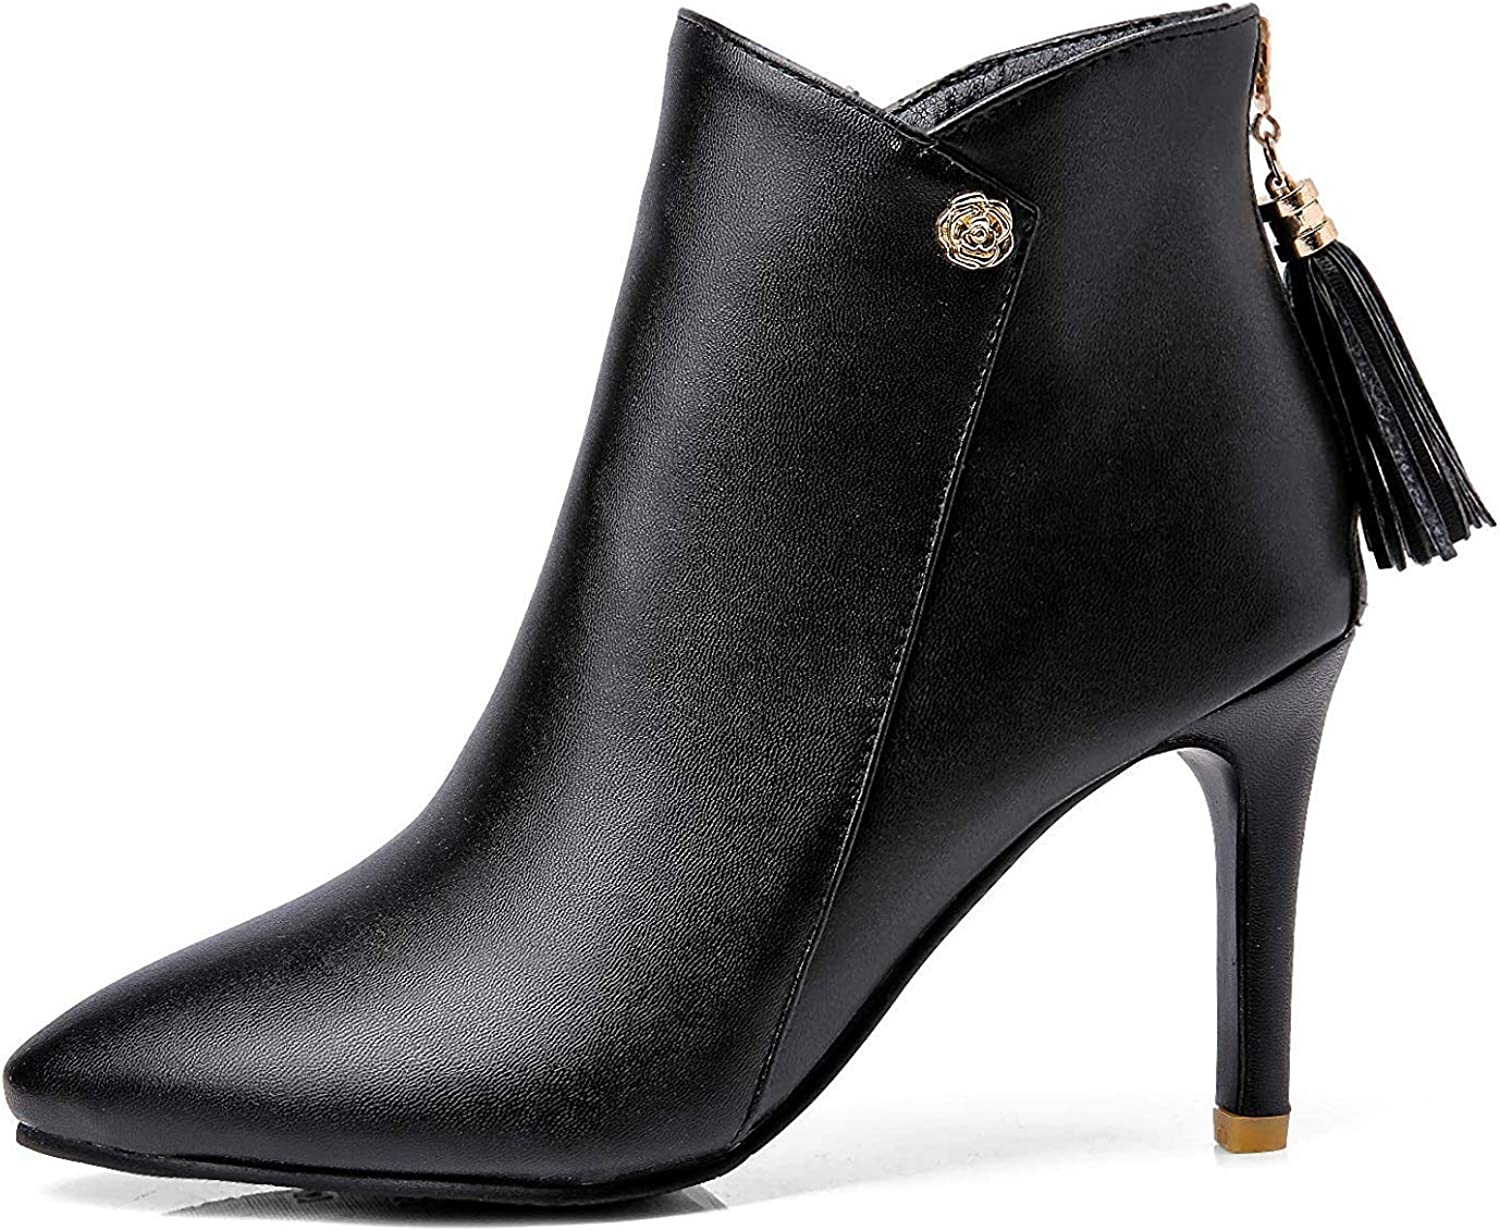 Unm Womens Chic Tassels Pointed Toe Dress Booties Zip Up Stiletto High Heel Ankle Boots with Zipper